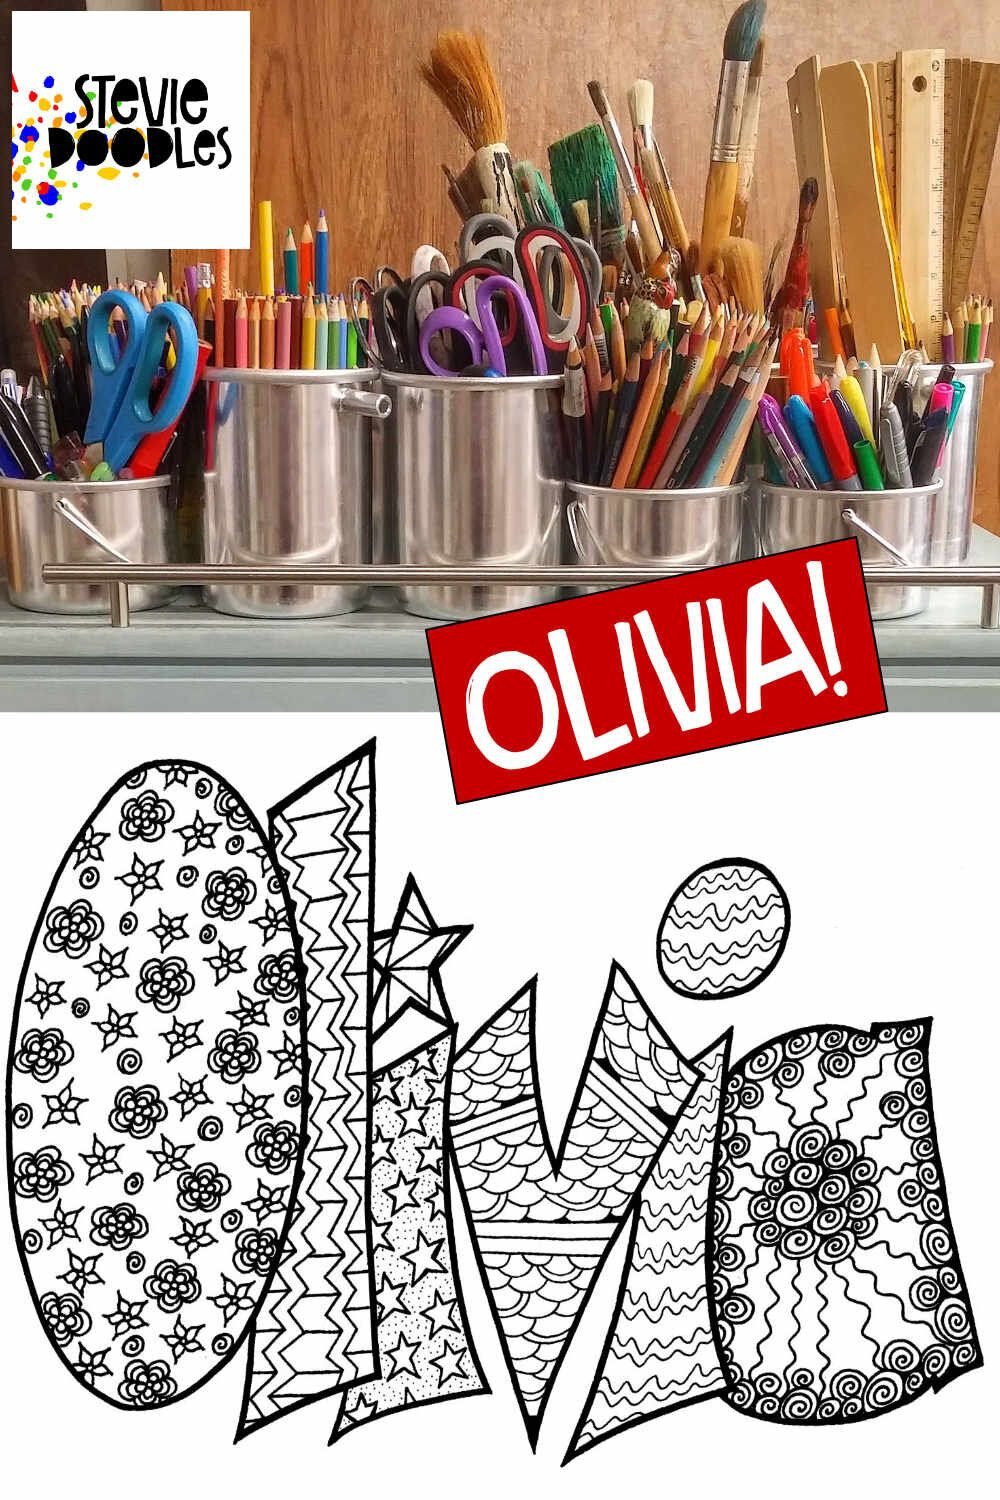 10 Free Printable Coloring Pages For Olivia Undefined Gpages Freeprintables Olivia Freeactivit Name Coloring Pages Free Printable Coloring Pages Coloring Pages